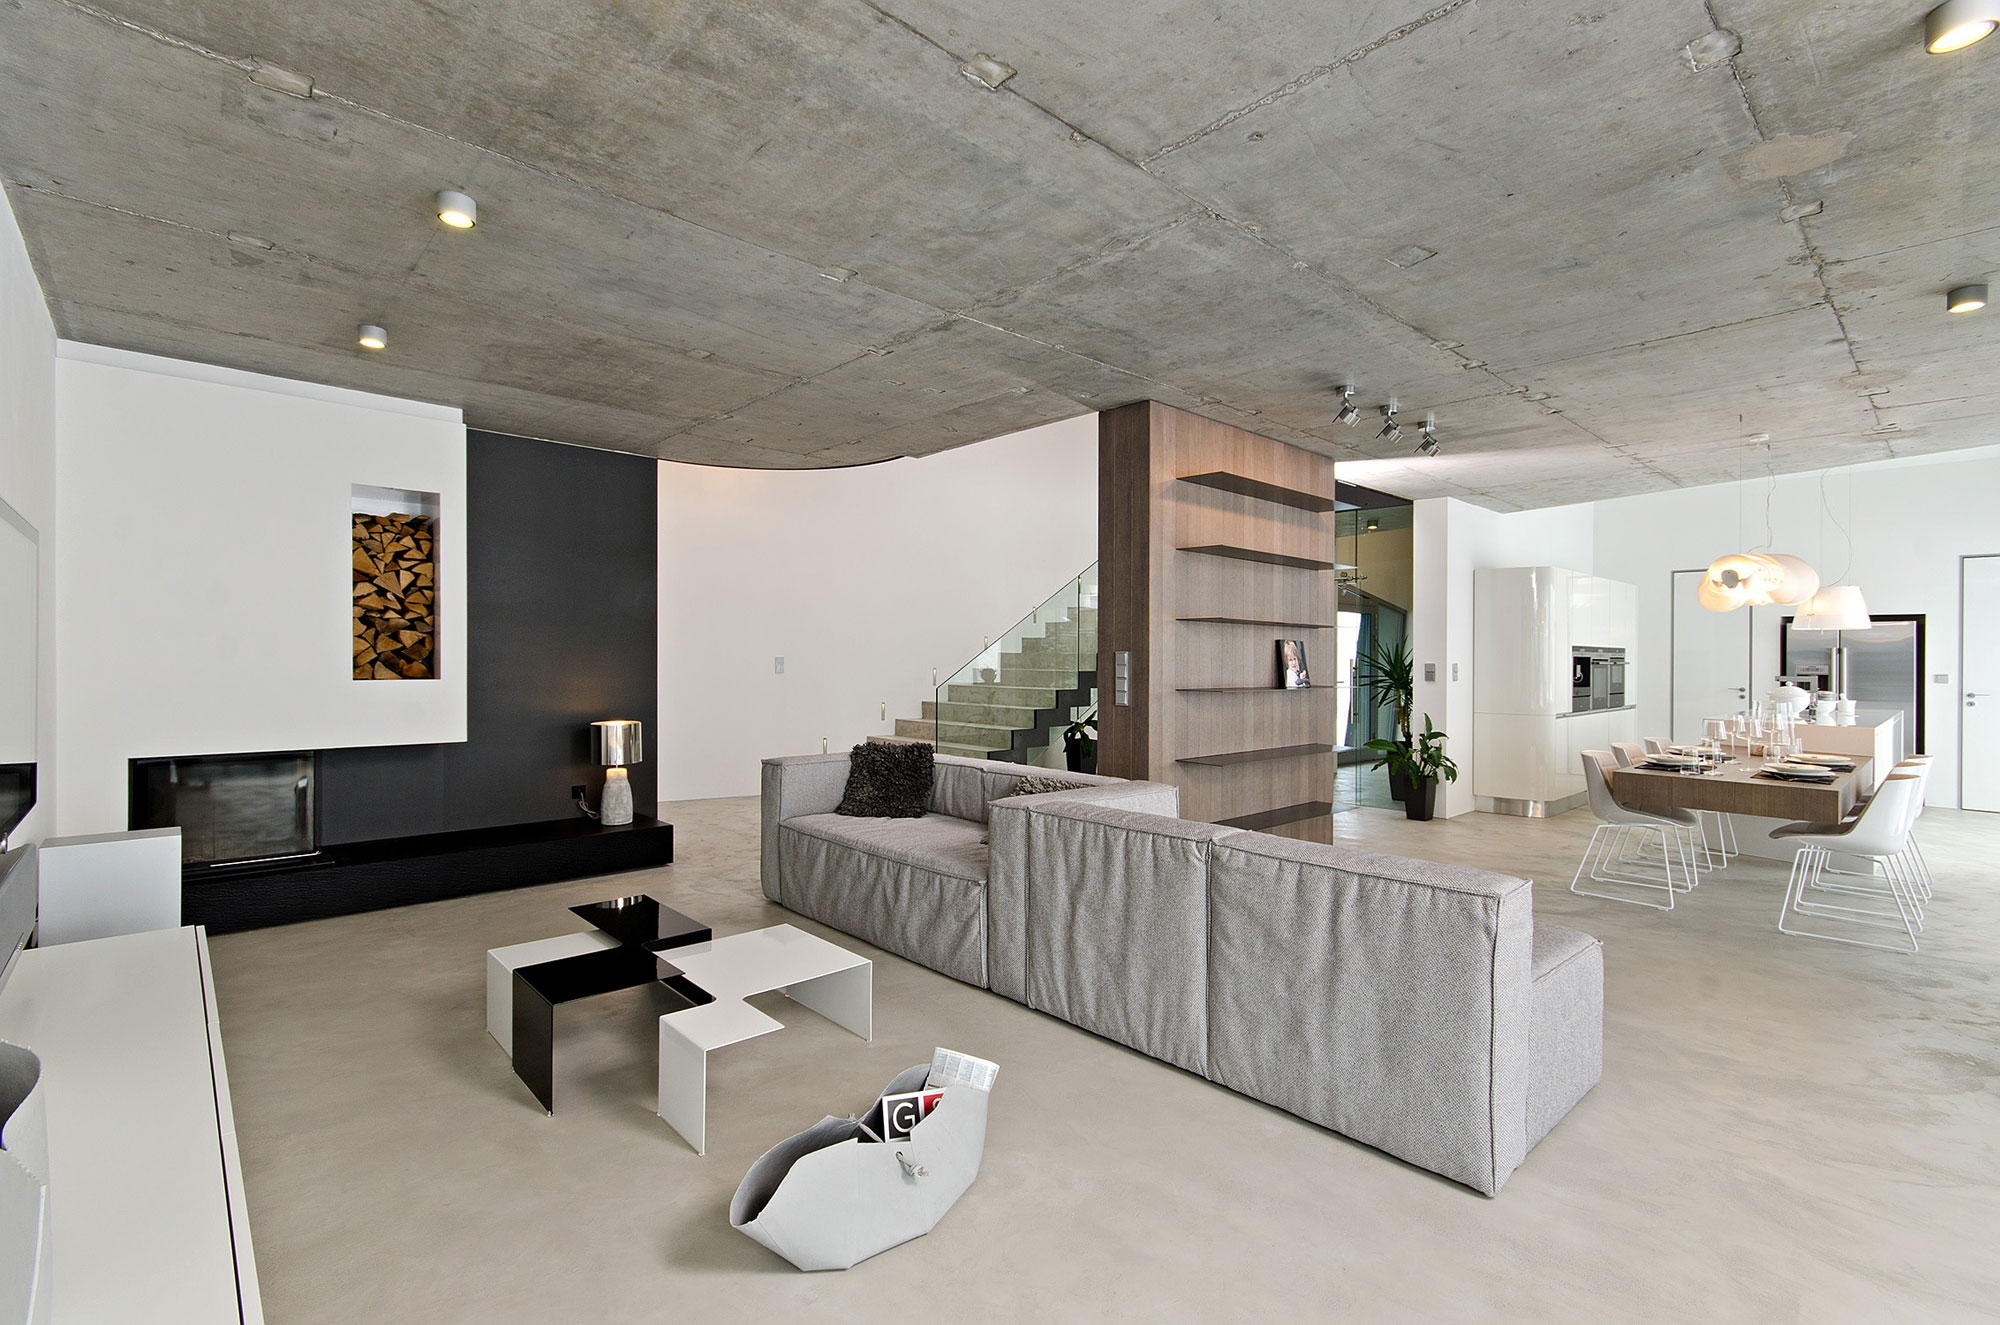 Concrete interior 01